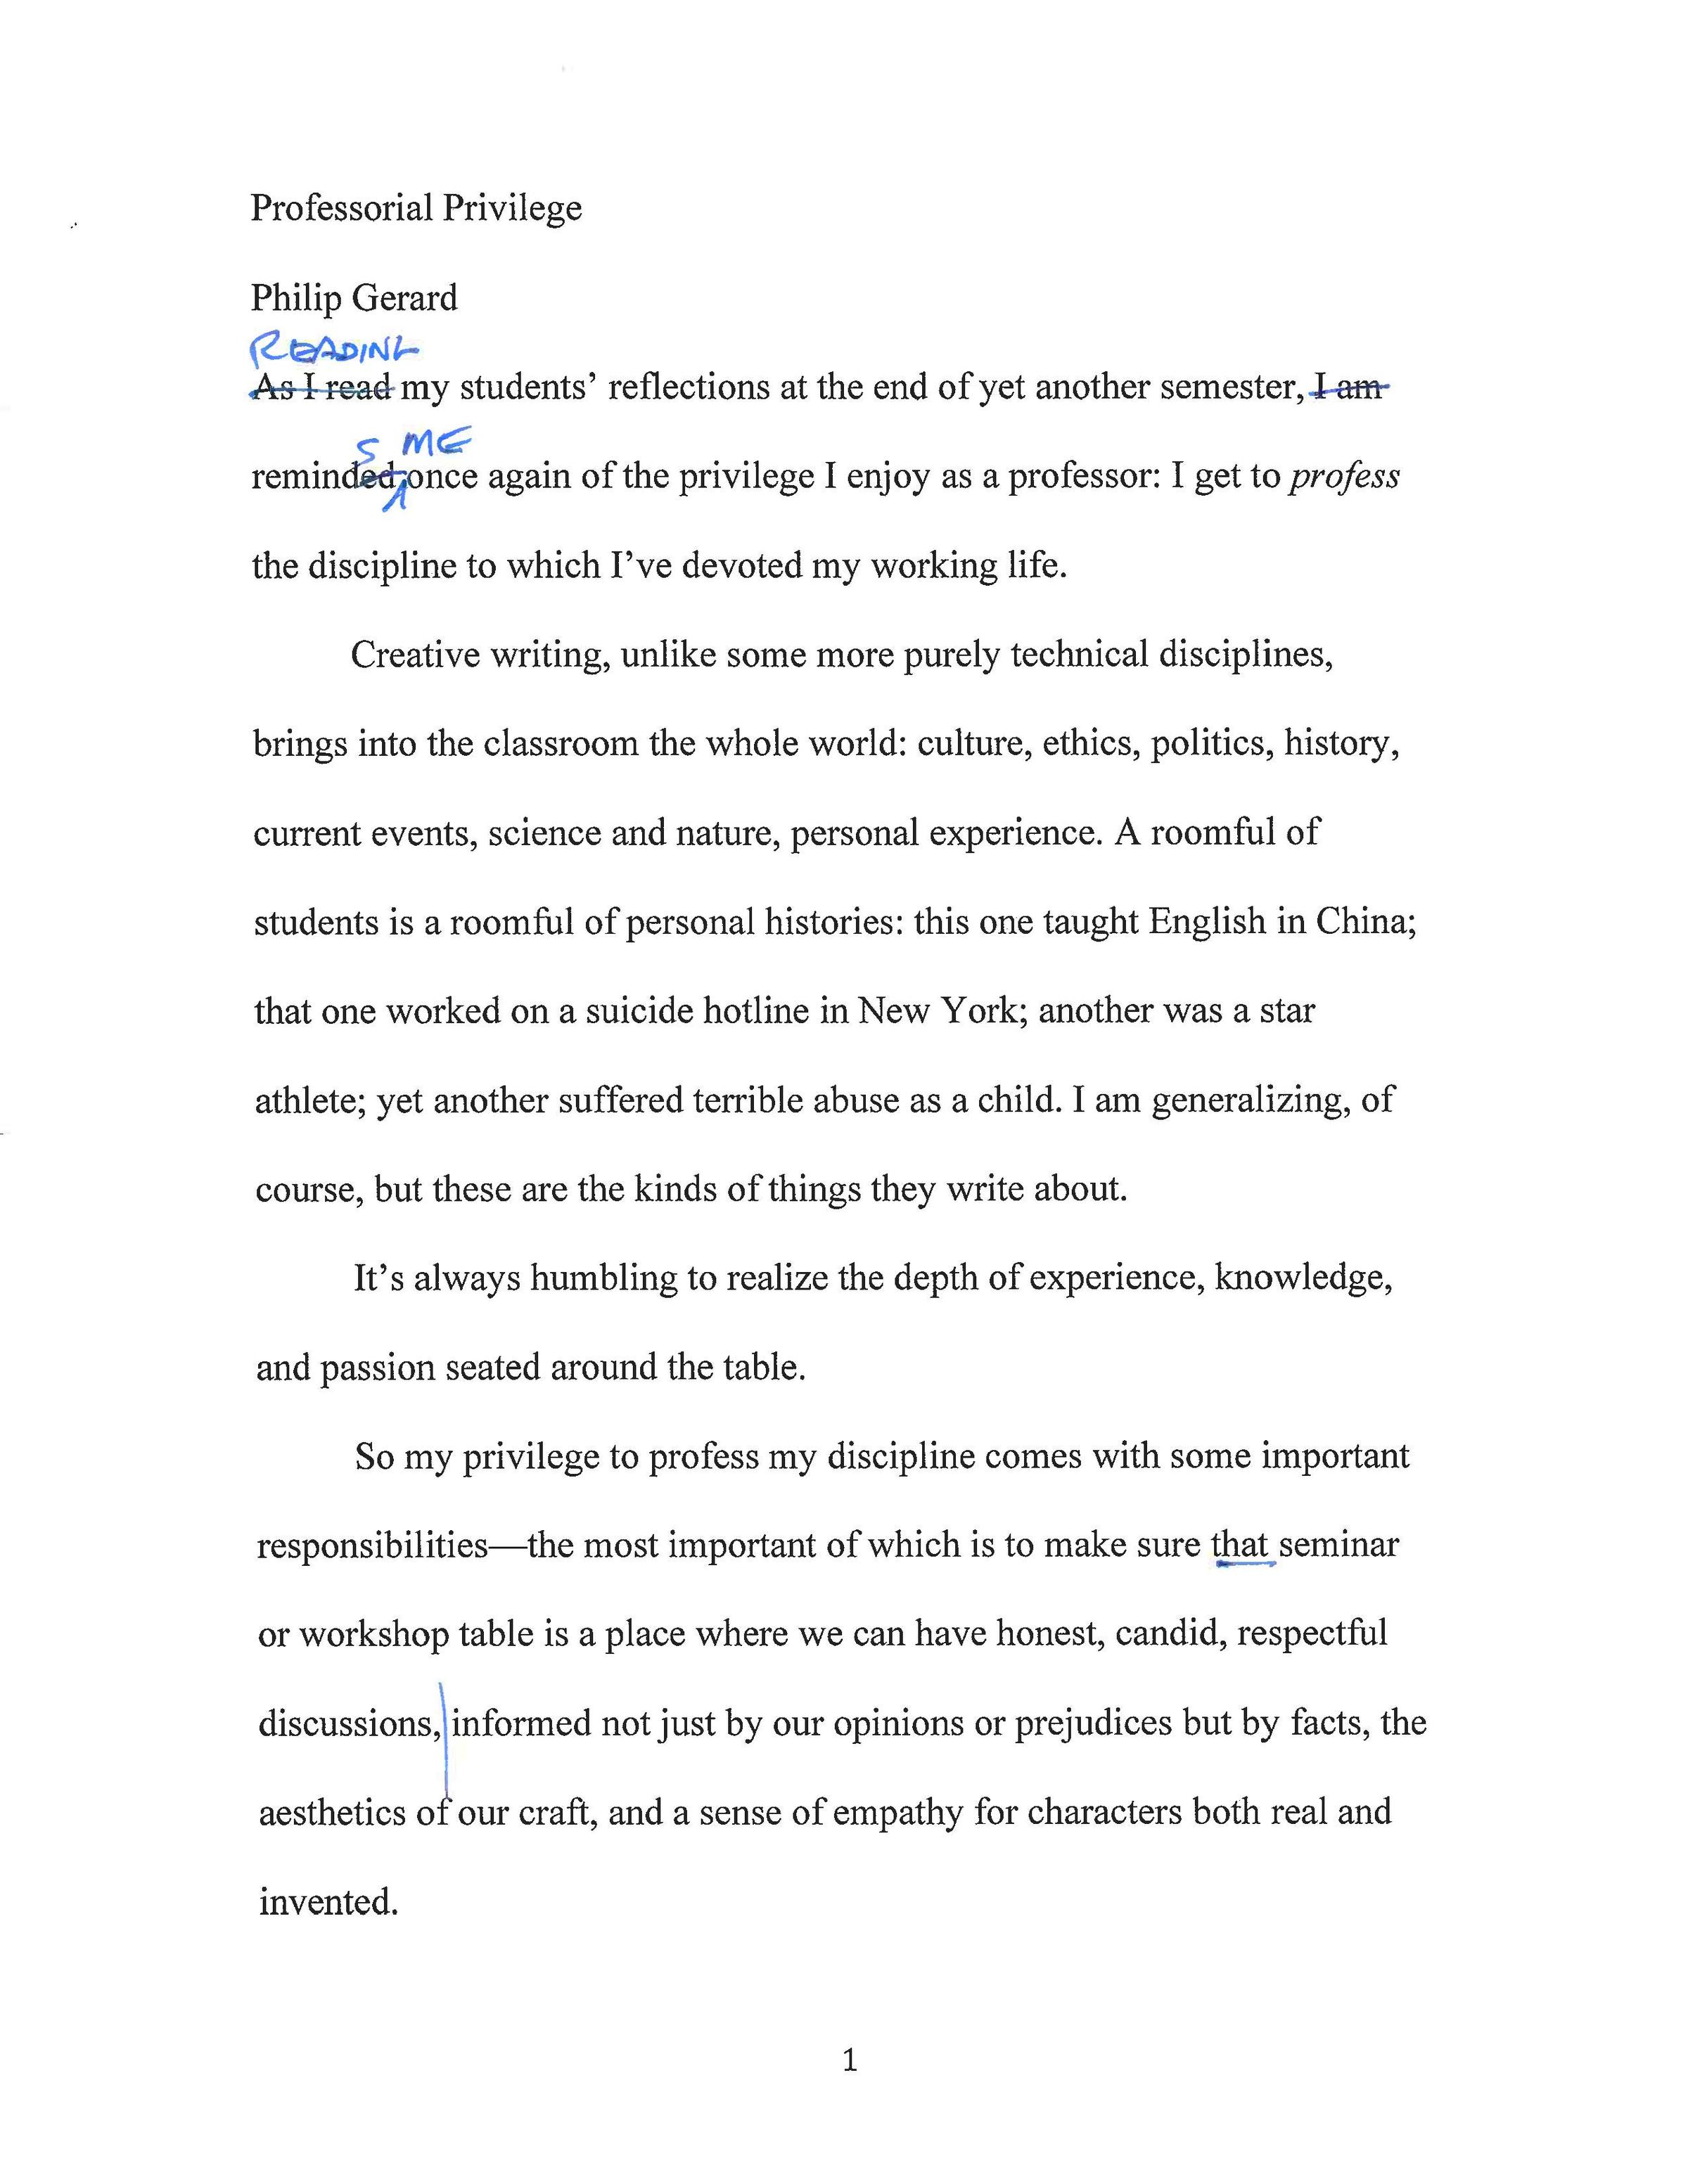 Diversity in the Classroom Essay - Words | Bartleby